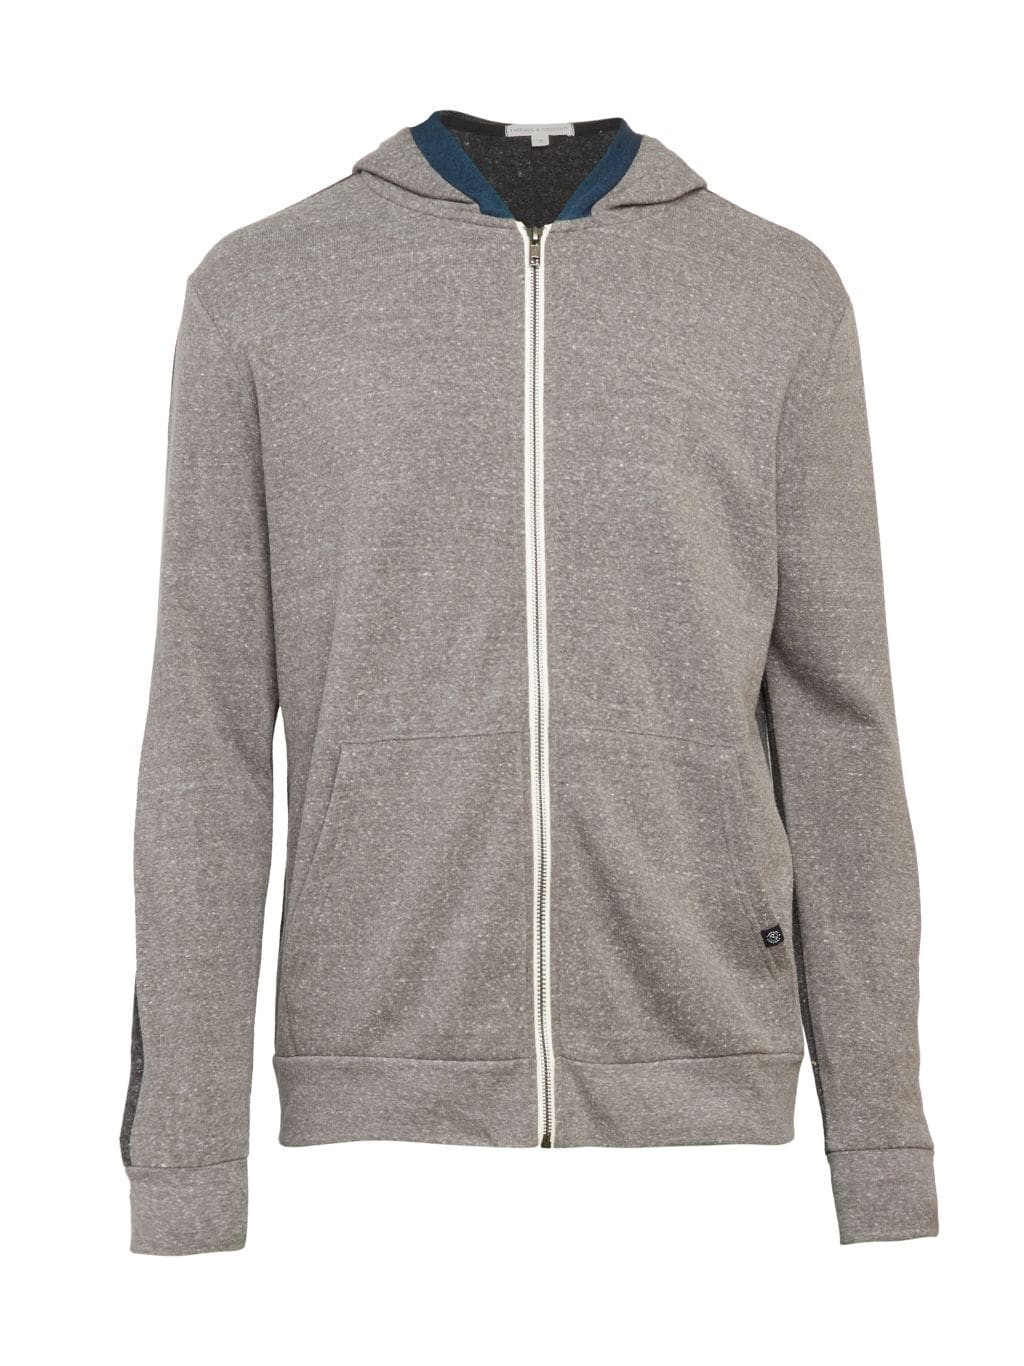 Threads 4 Thought Oscar Reversible Zip Hoodie